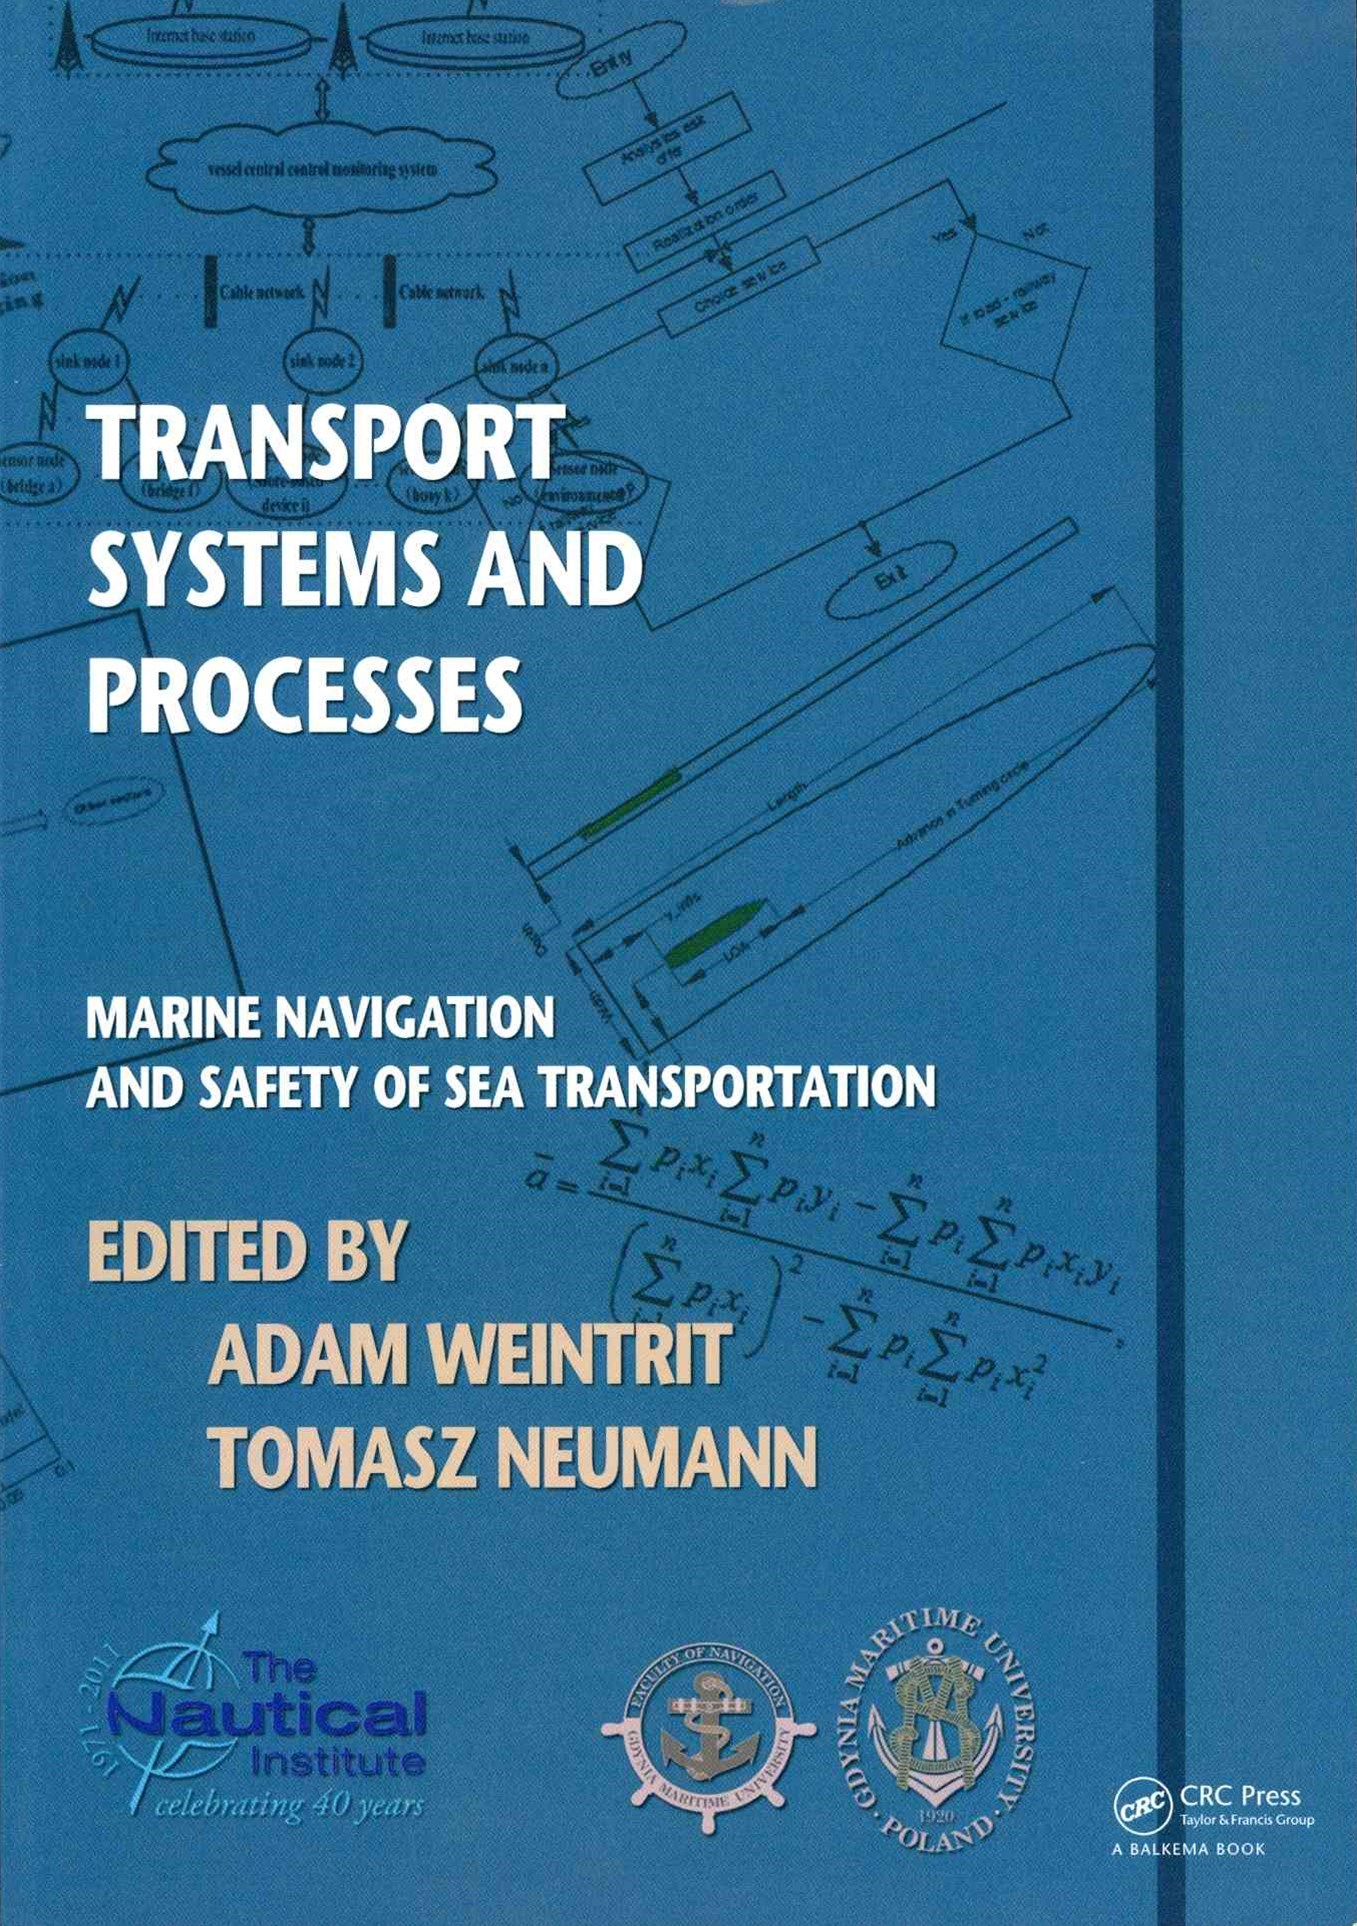 Transport Systems and Processes